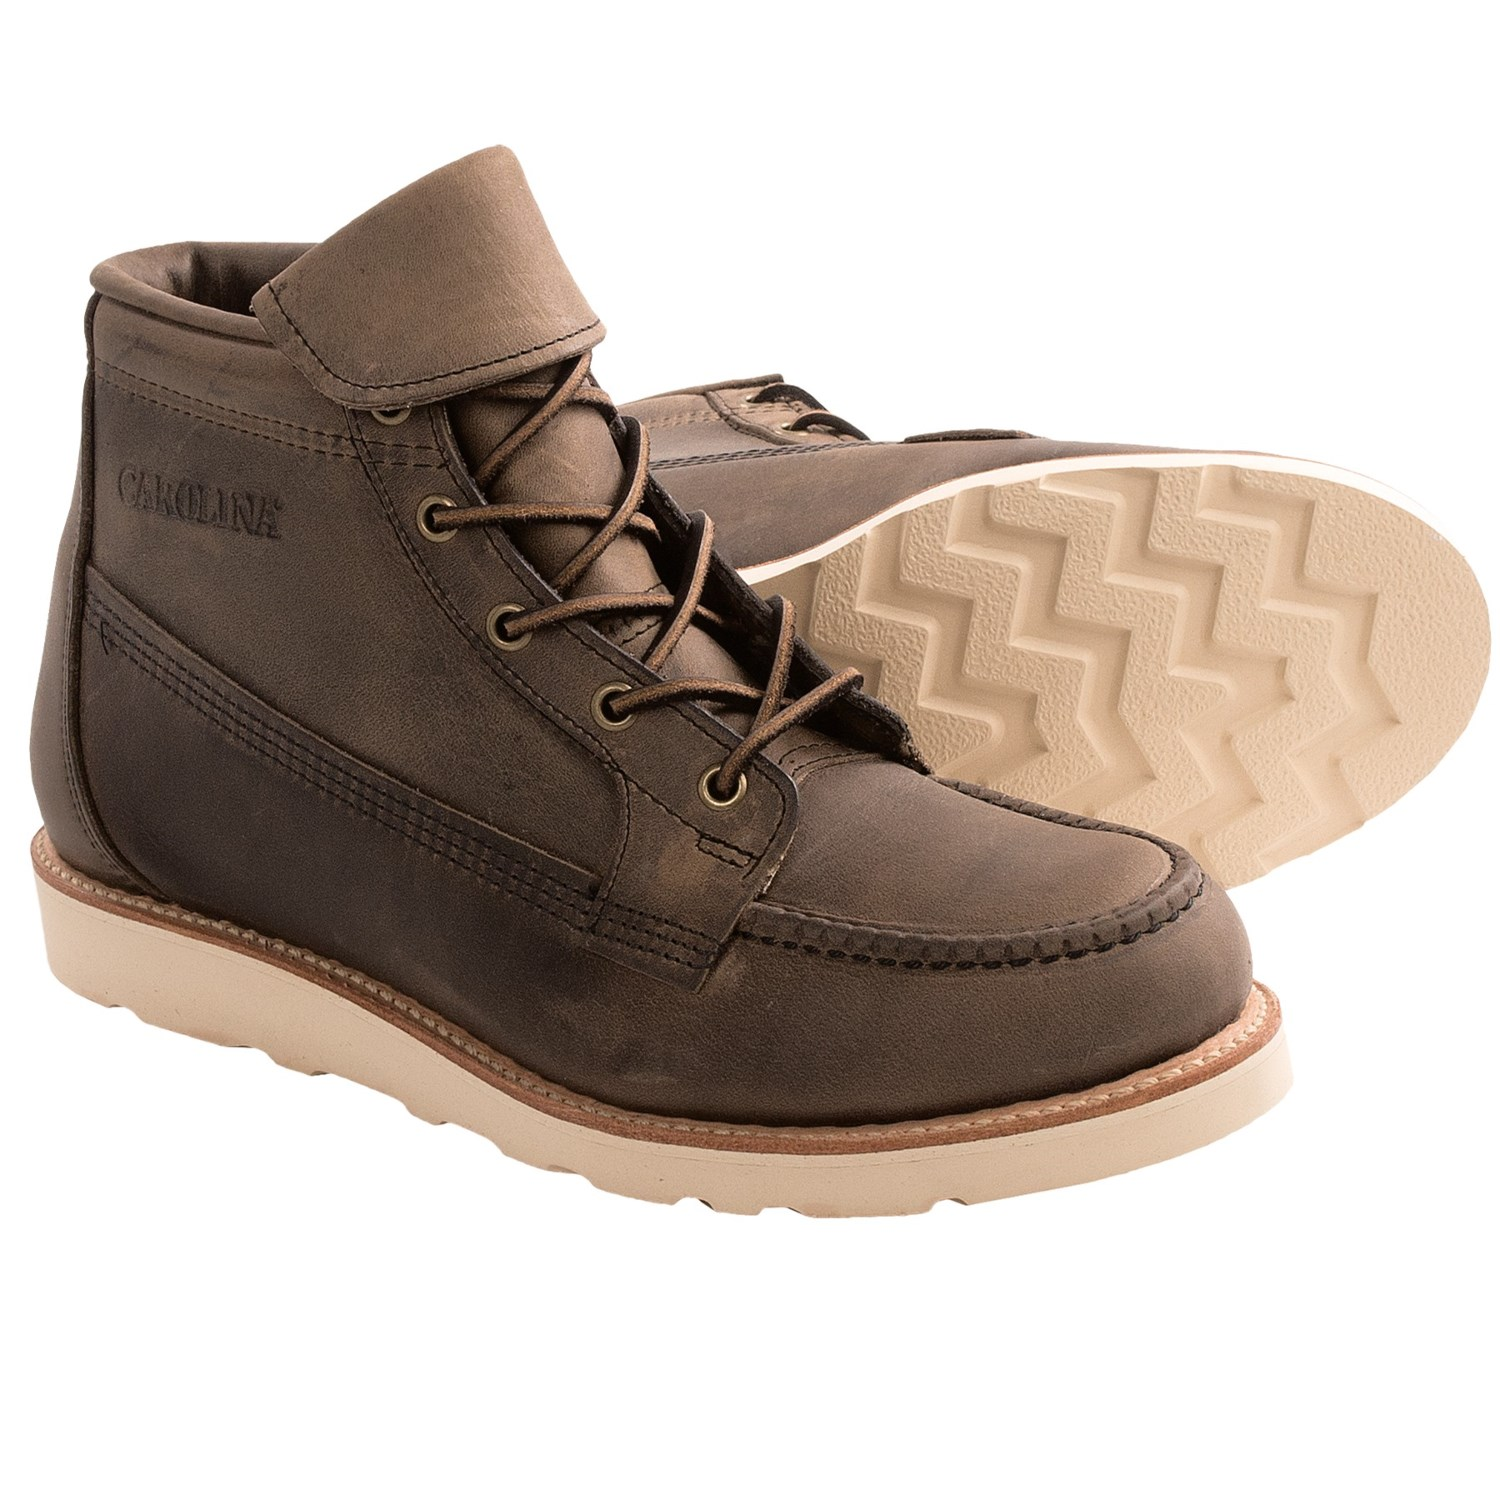 Distressed Leather Shoes For Men